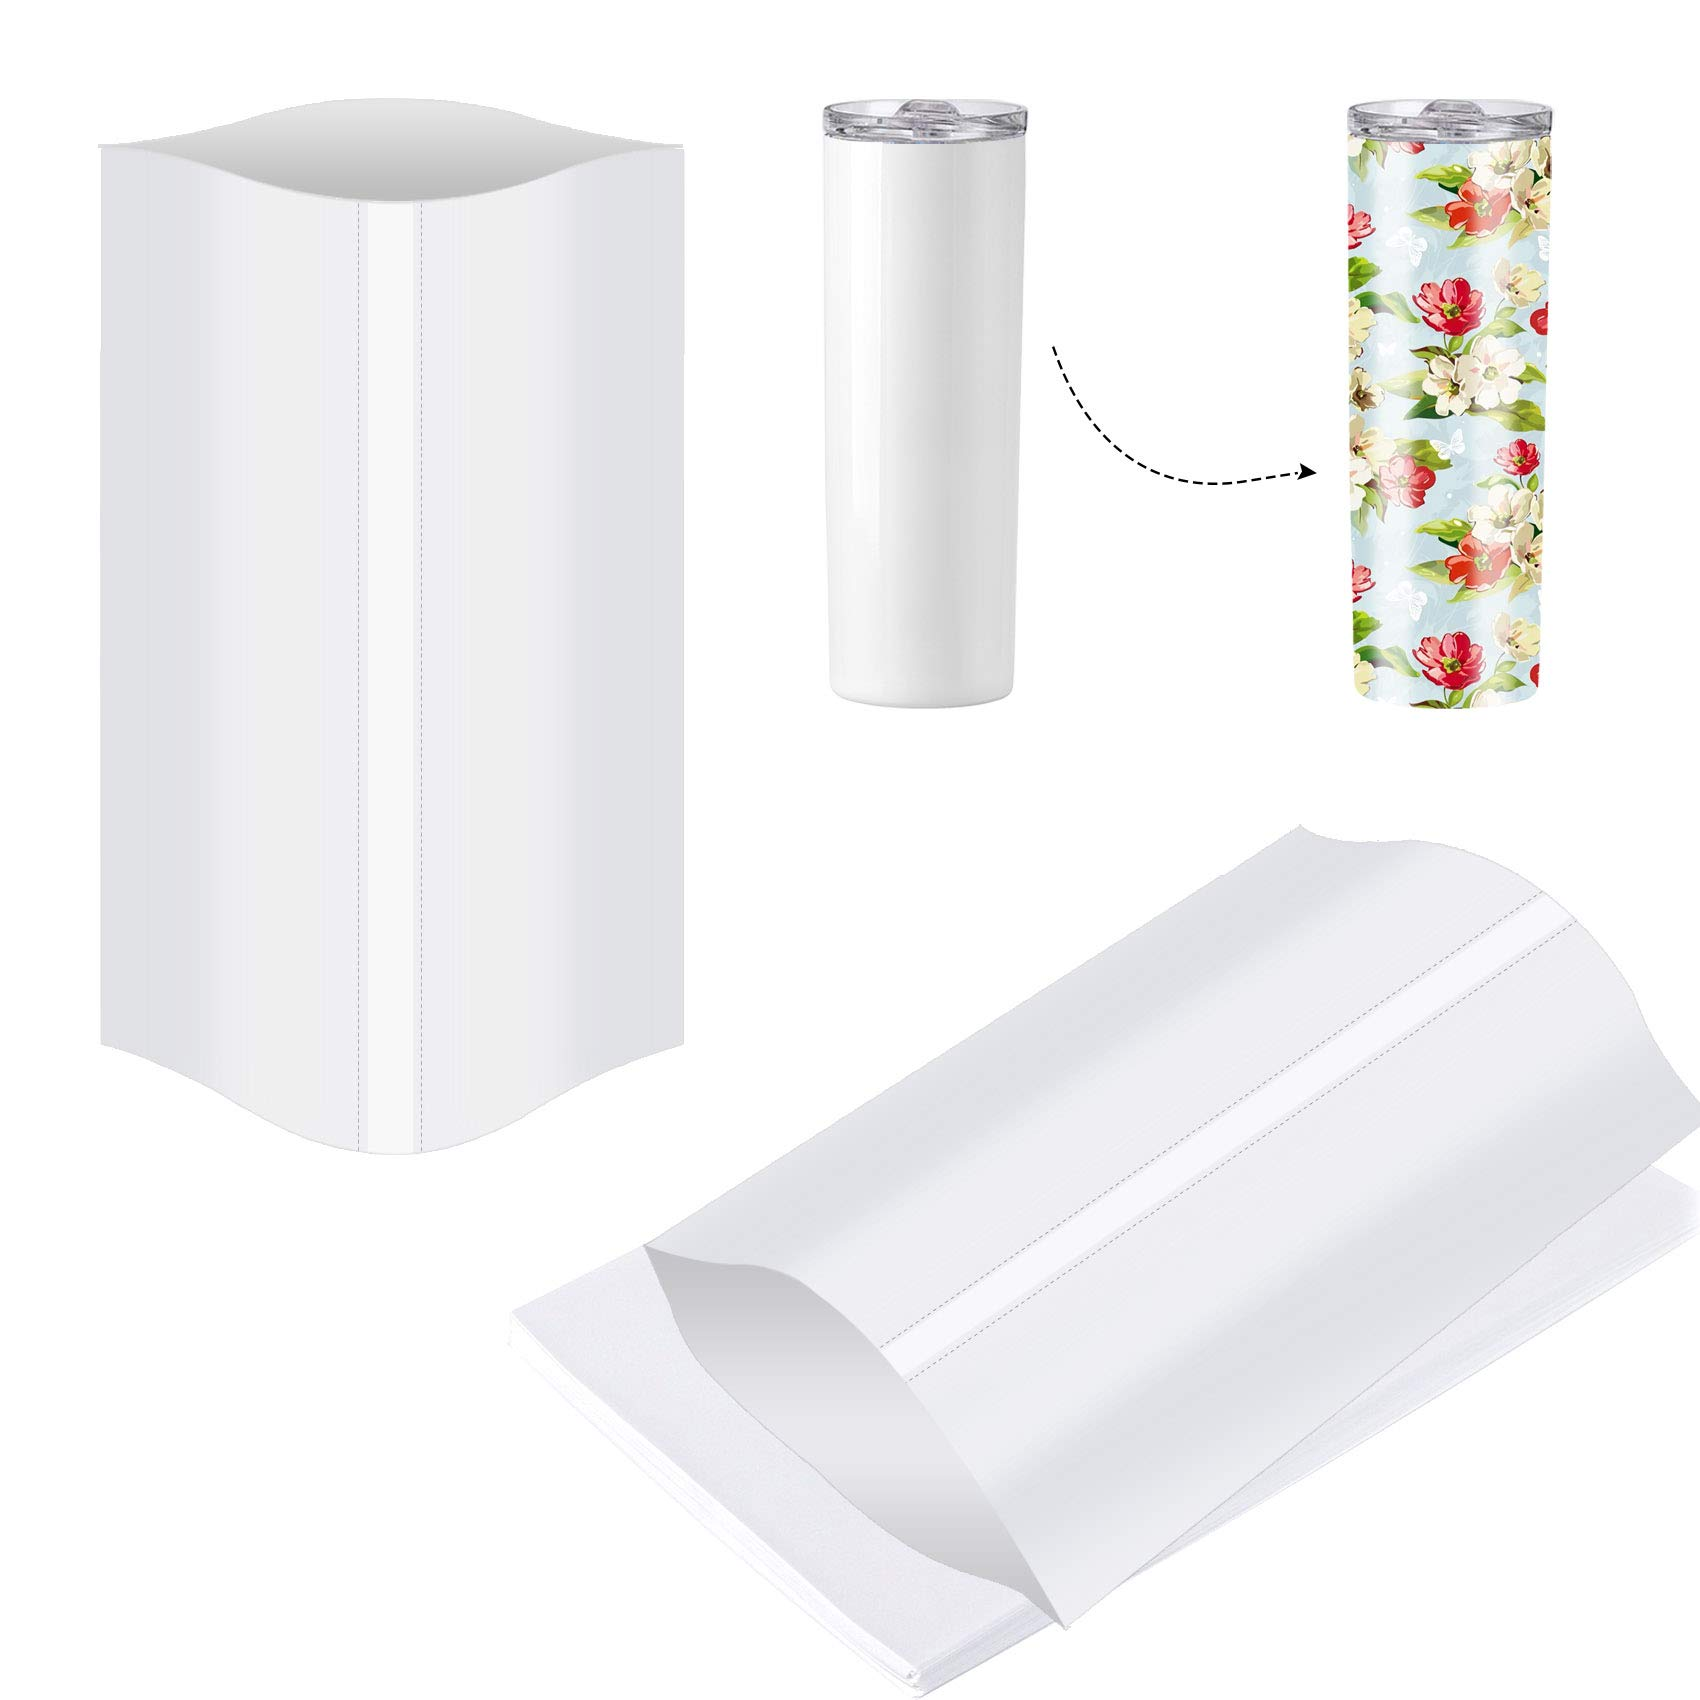 7x11 Inch Sublimation Shrink Wrap Sleeves, 60 Pcs White Sublimation Shrink Wrap for Tumblers, Mugs, Cups and More, Sublimation Shrink Film